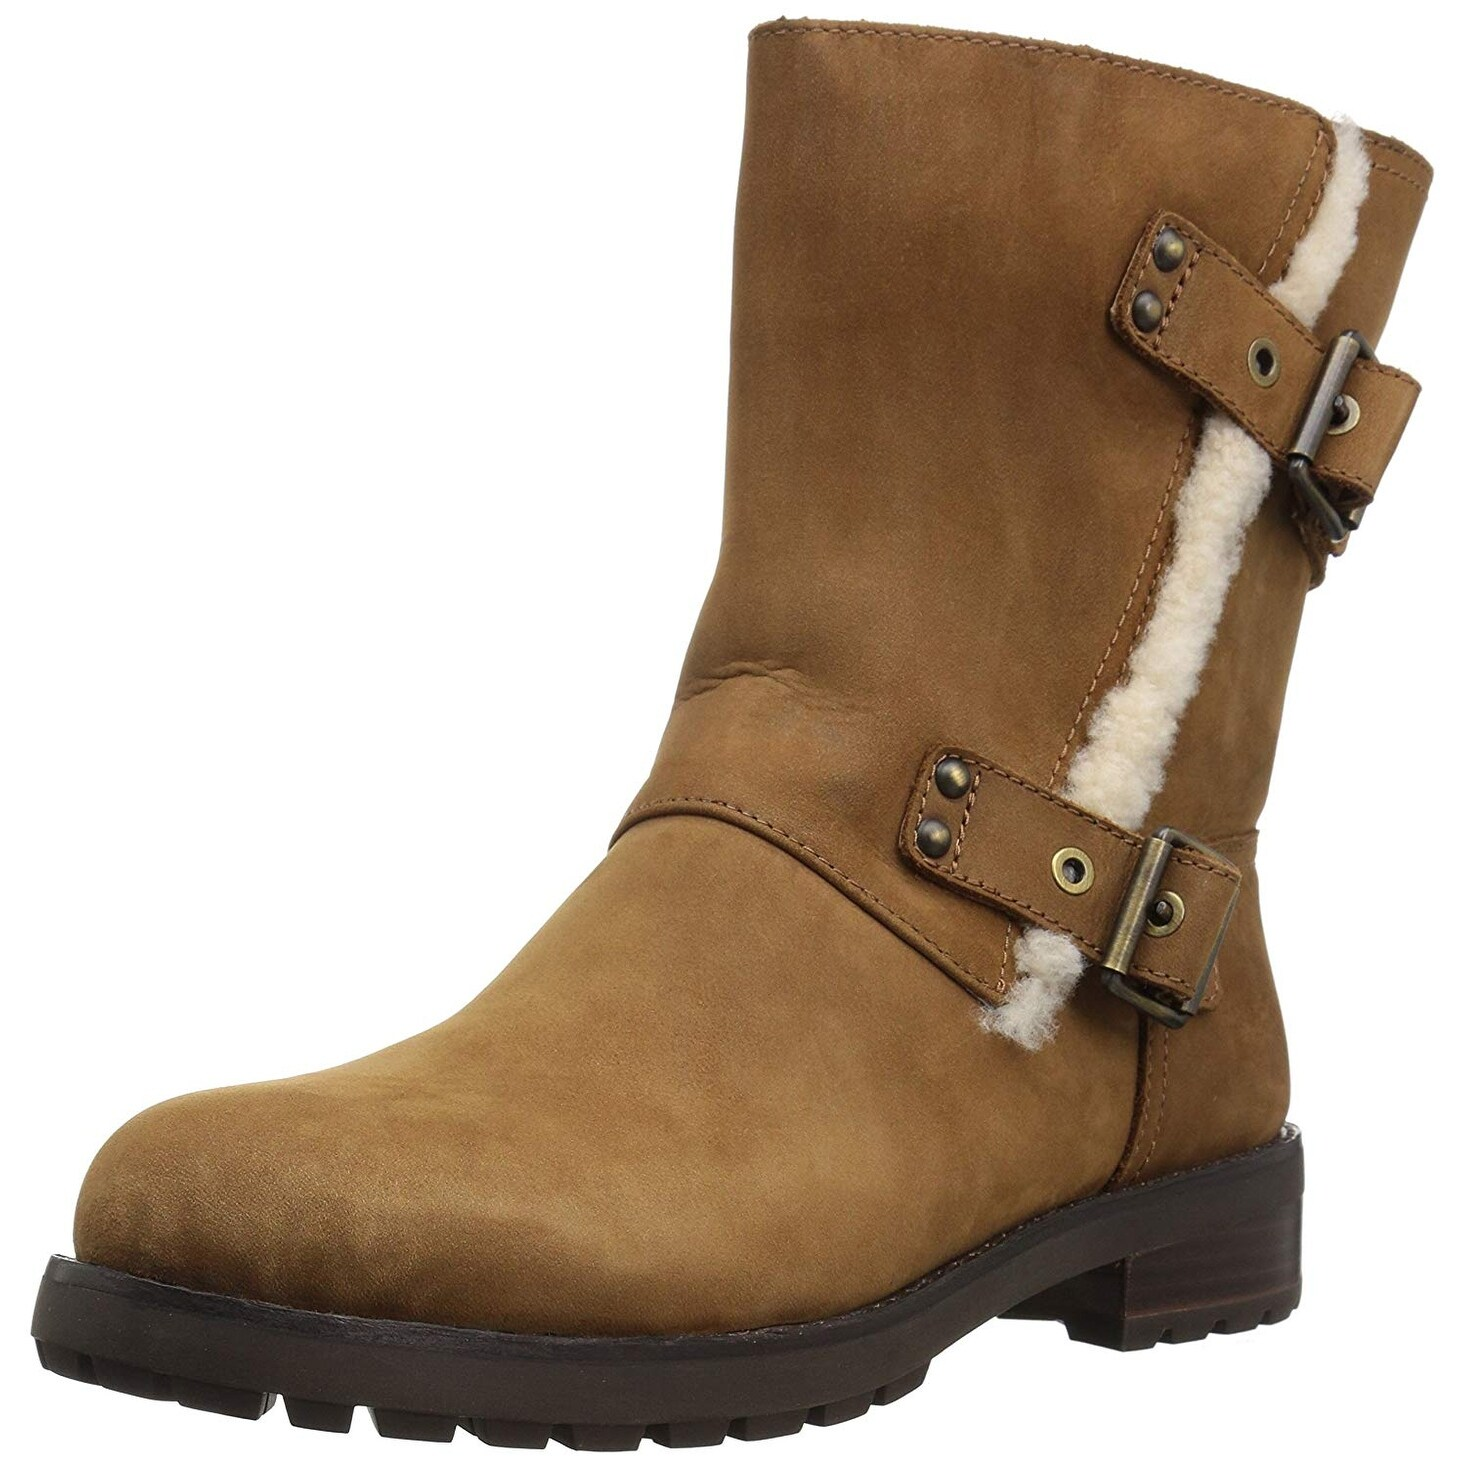 bc5df6a90a9 UGG Women's Niels Zippered Boot